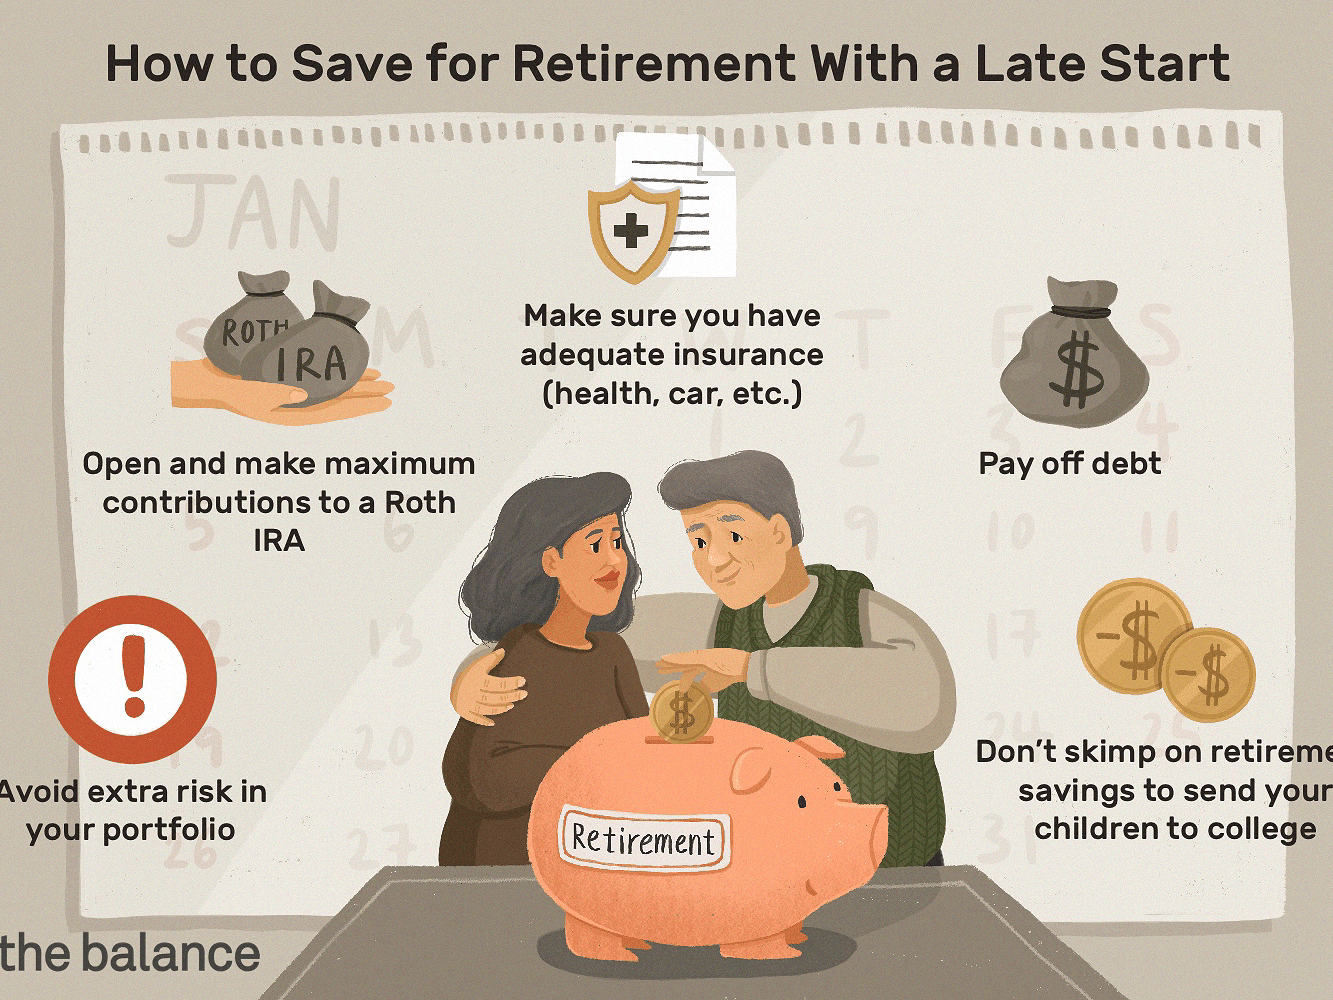 7 Tips For Saving For Retirement If You Started Late